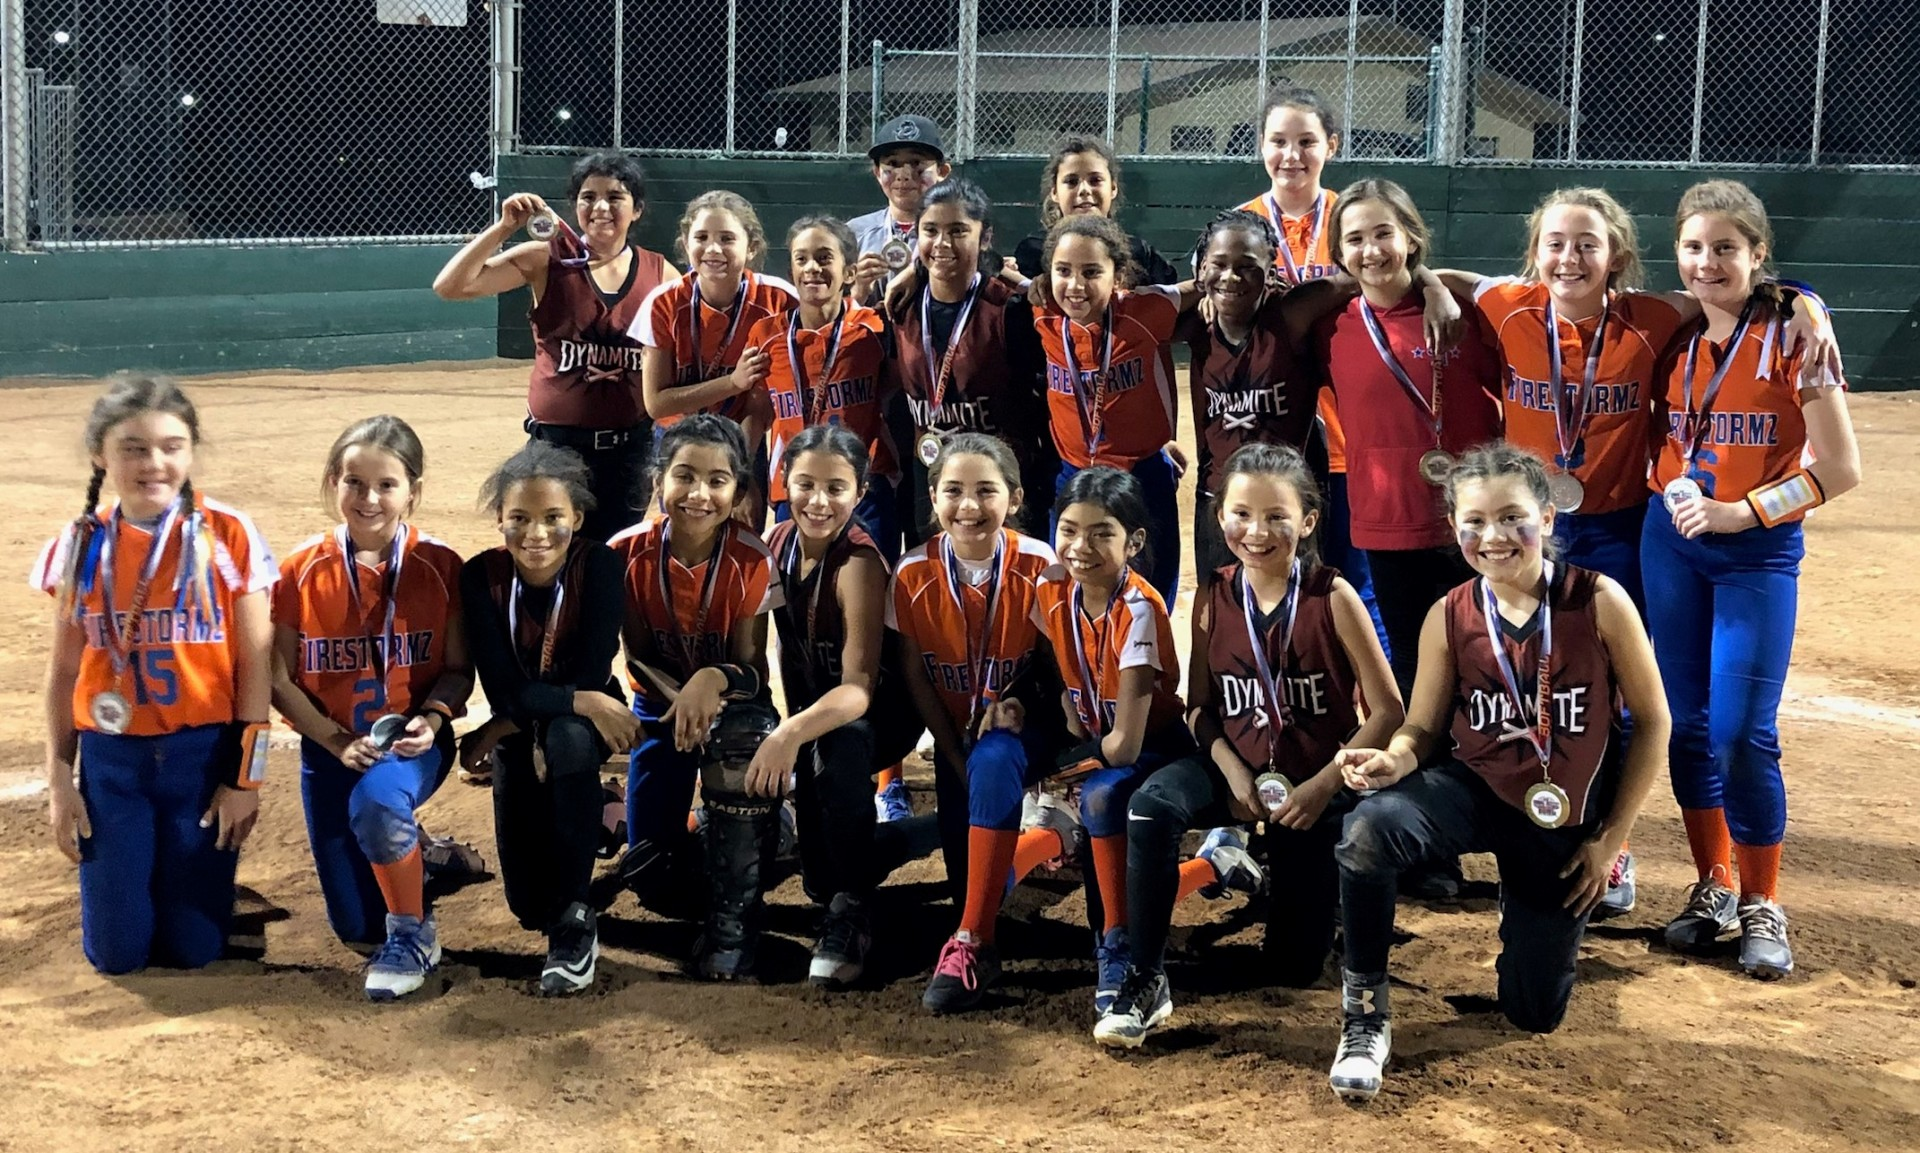 10u - 1st SGV Dynamite - Runner Up - Firestormz - Bragg